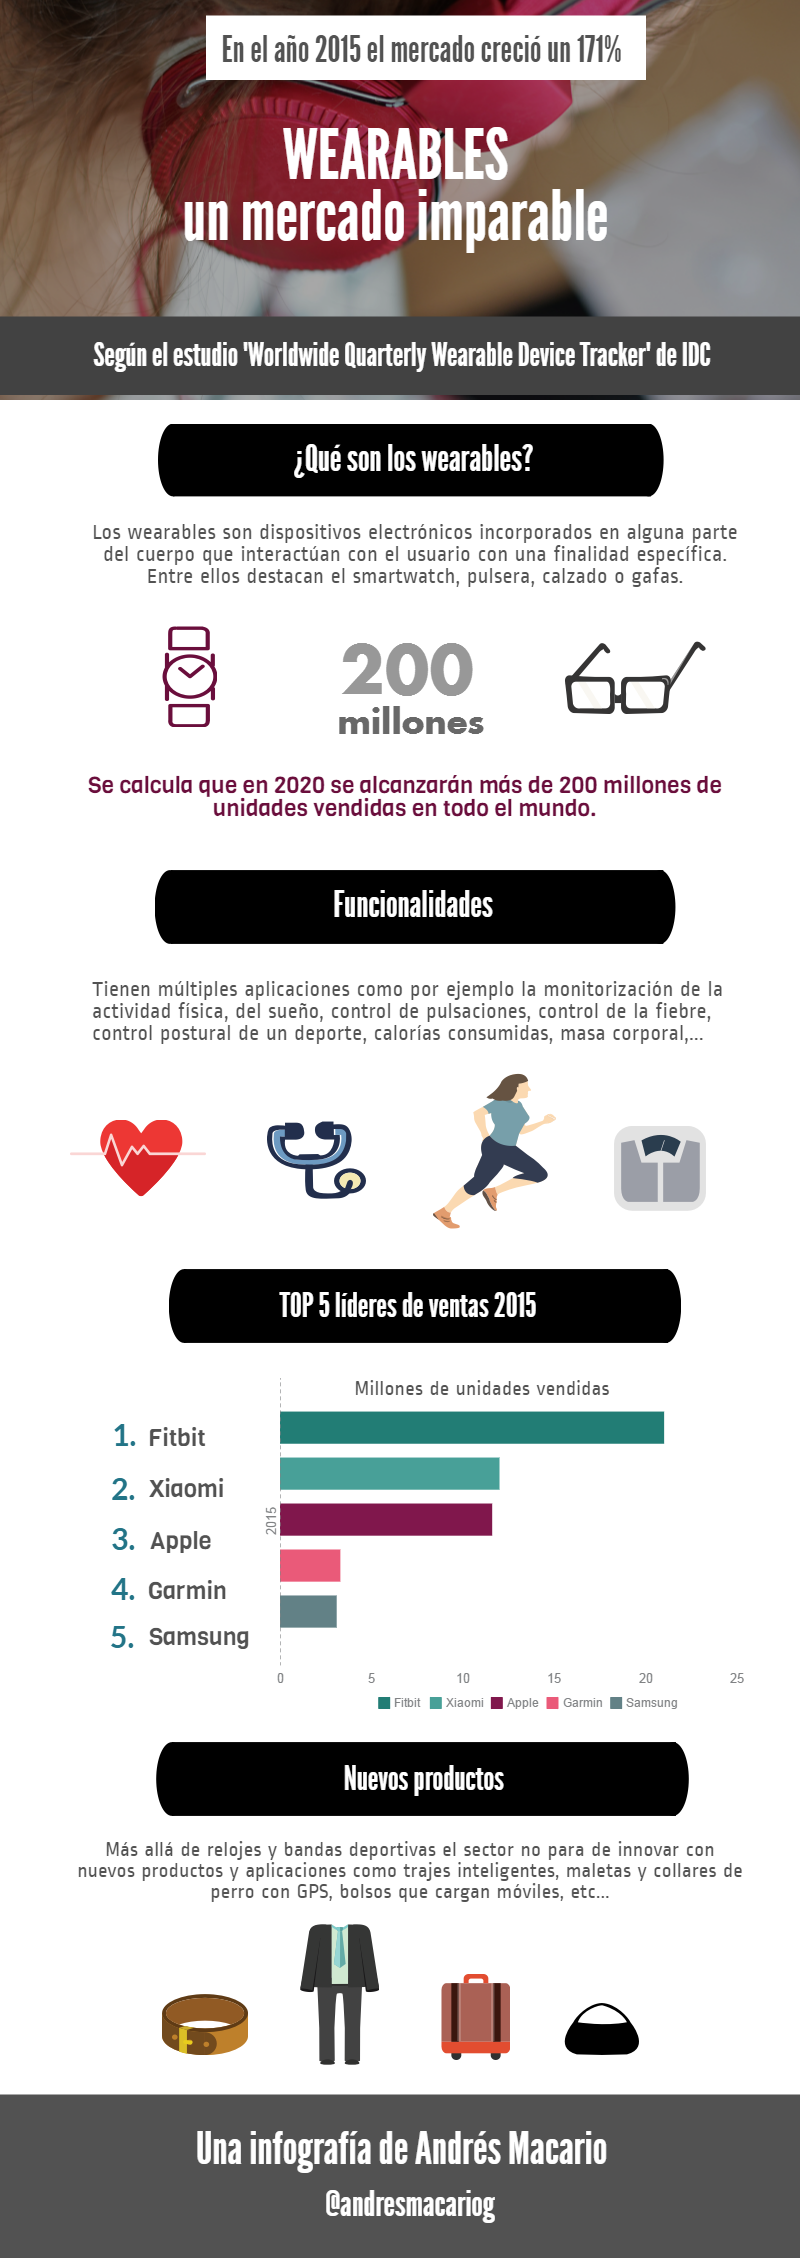 Wearables un mercado imparable- Infografia Andres Macario